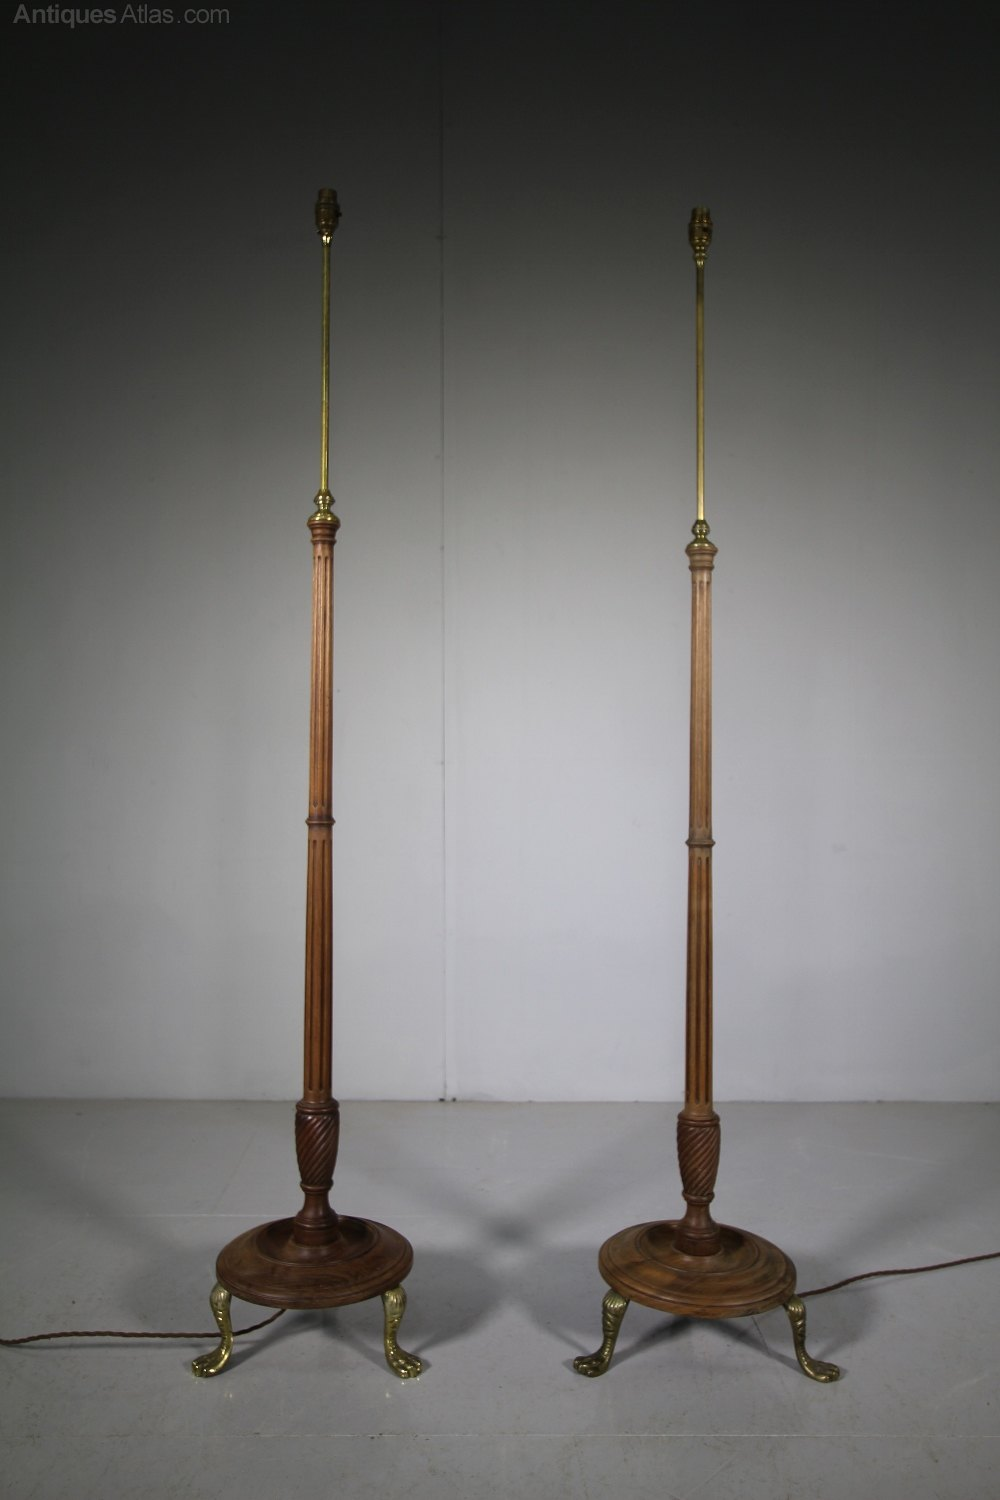 Antiques Atlas Pair Of Edwardian Antique Floor Lamps Rewired